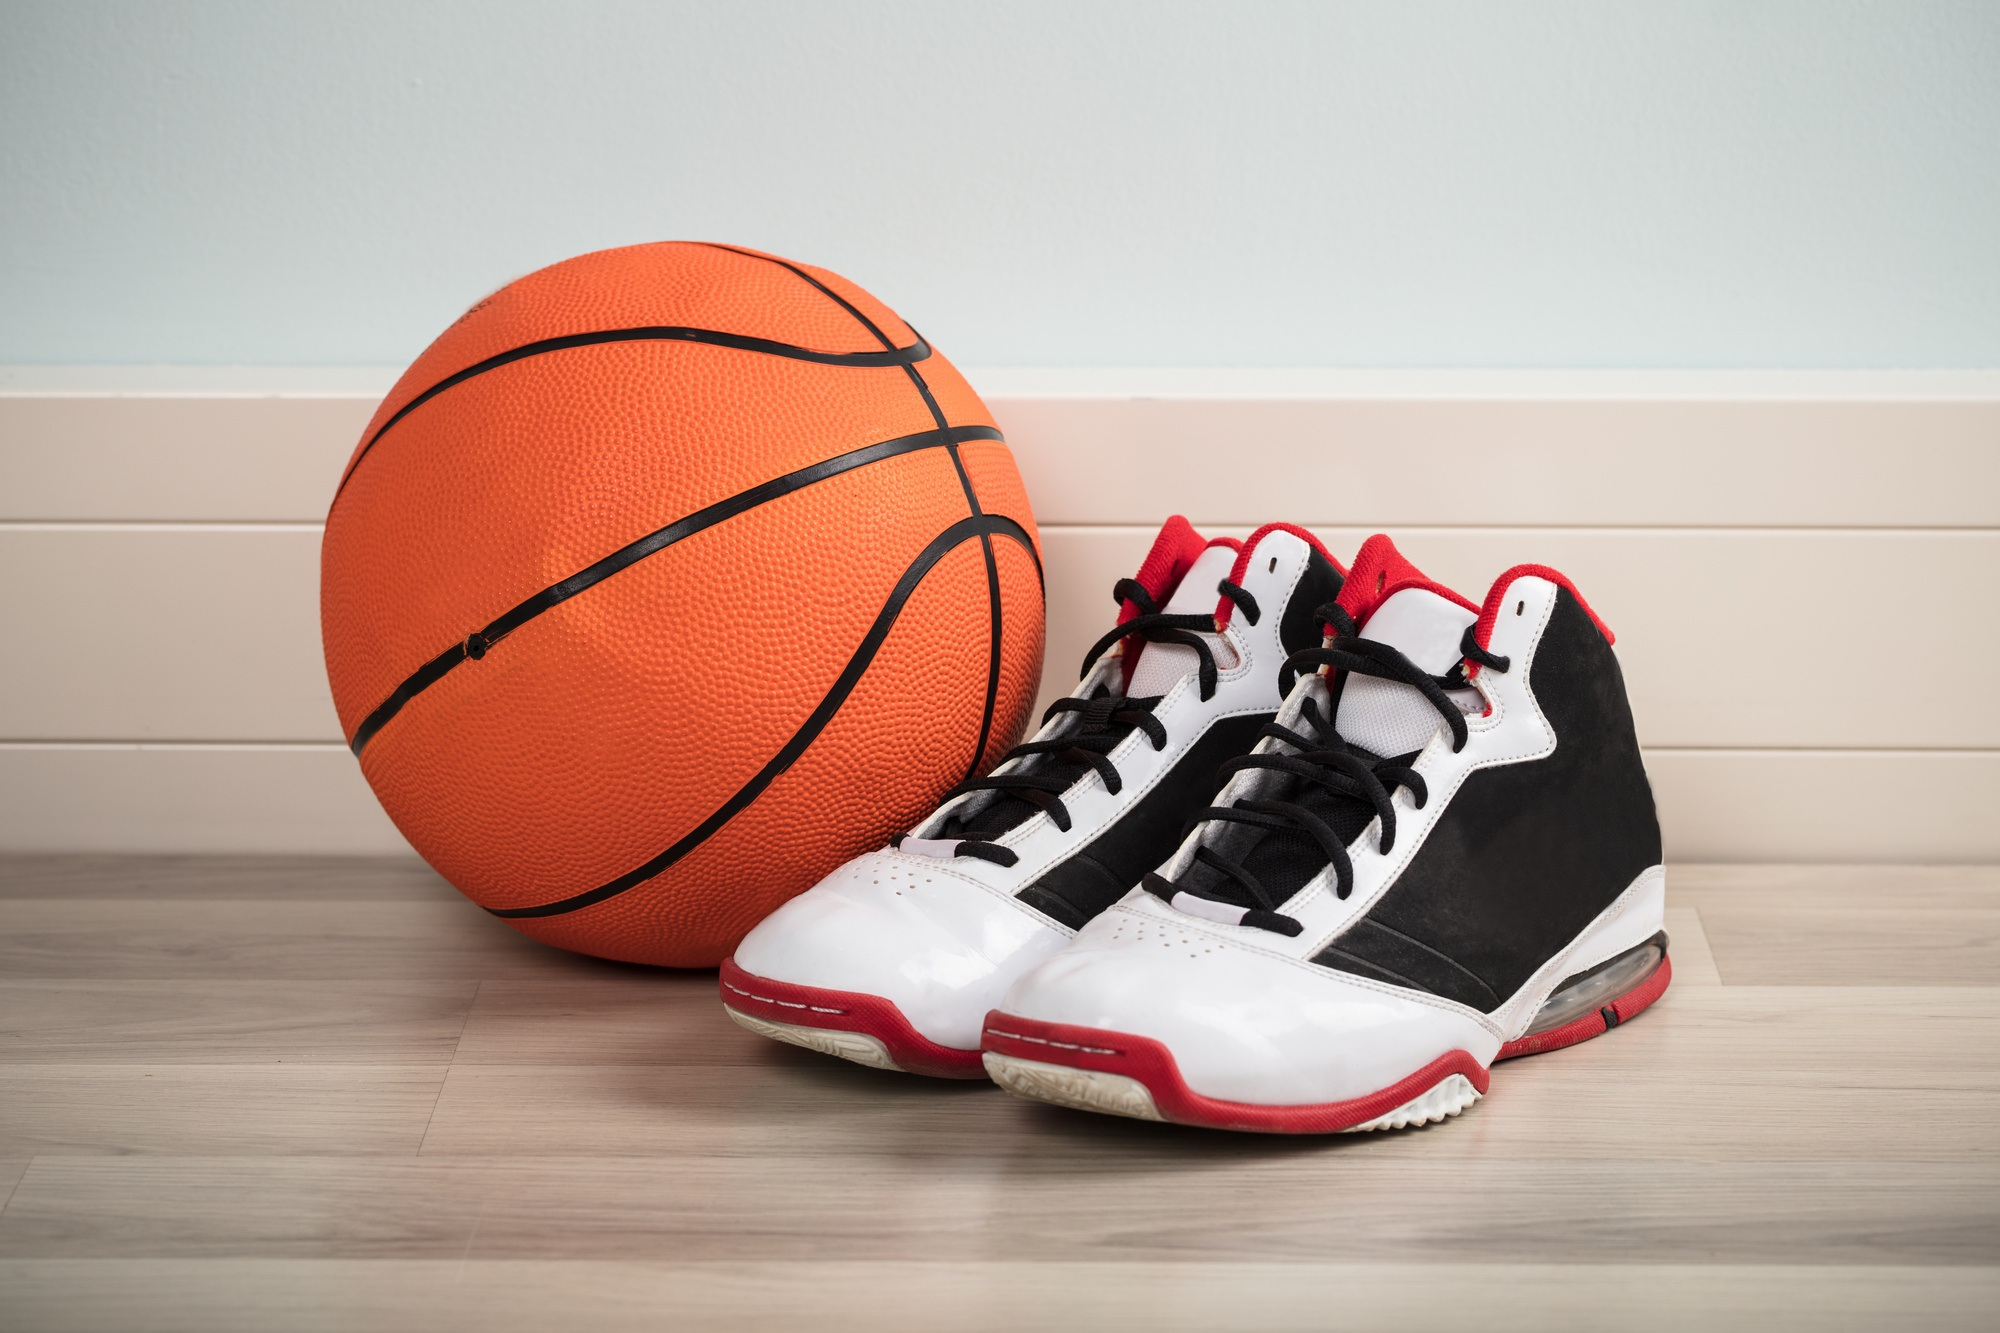 Basketball Shoes Can Improve the Basketball Players Performance